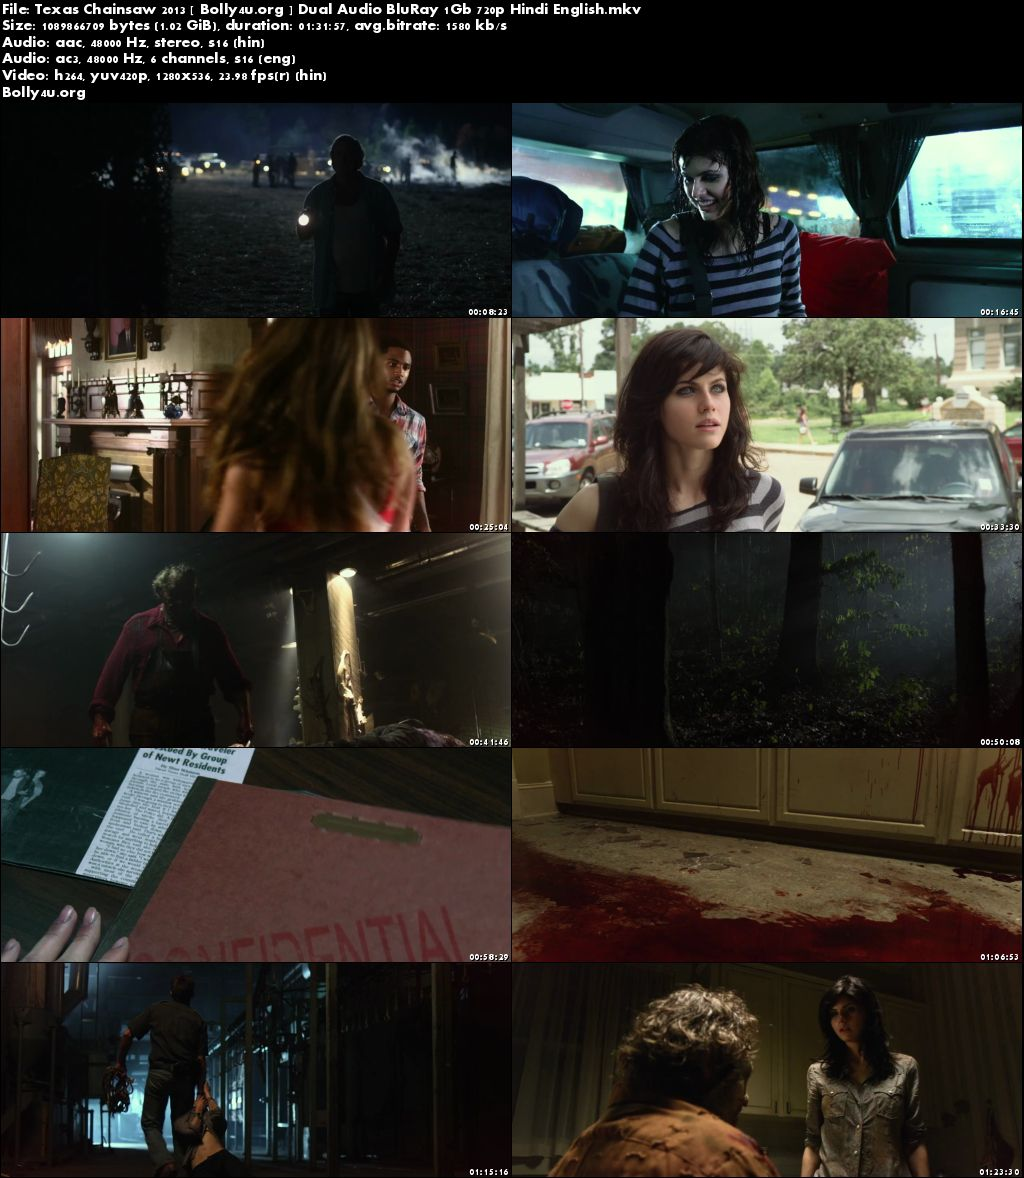 Texas Chainsaw 2013 BluRay 1Gb Hindi Dual Audio 720p Download